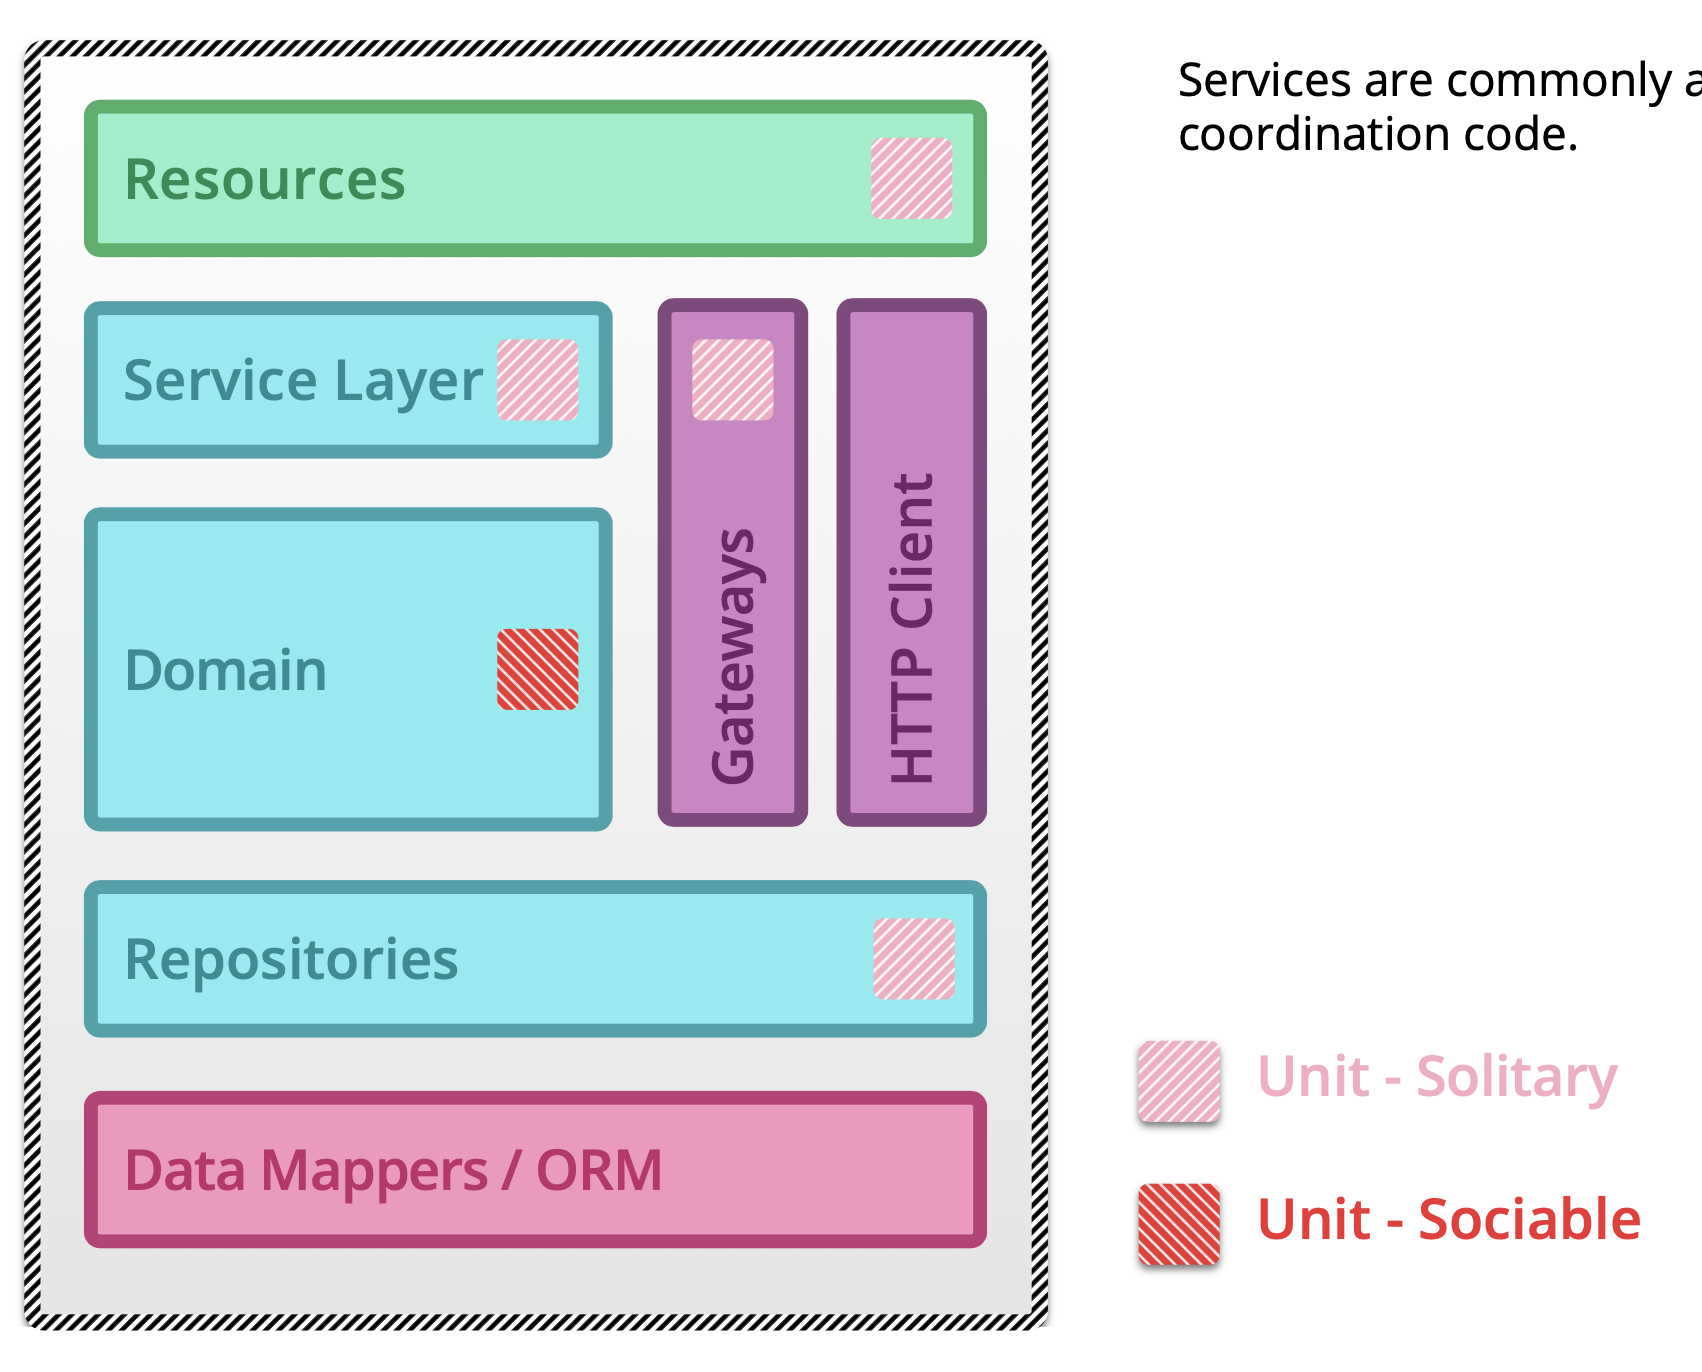 ../../_images/testing-microservices-04.png